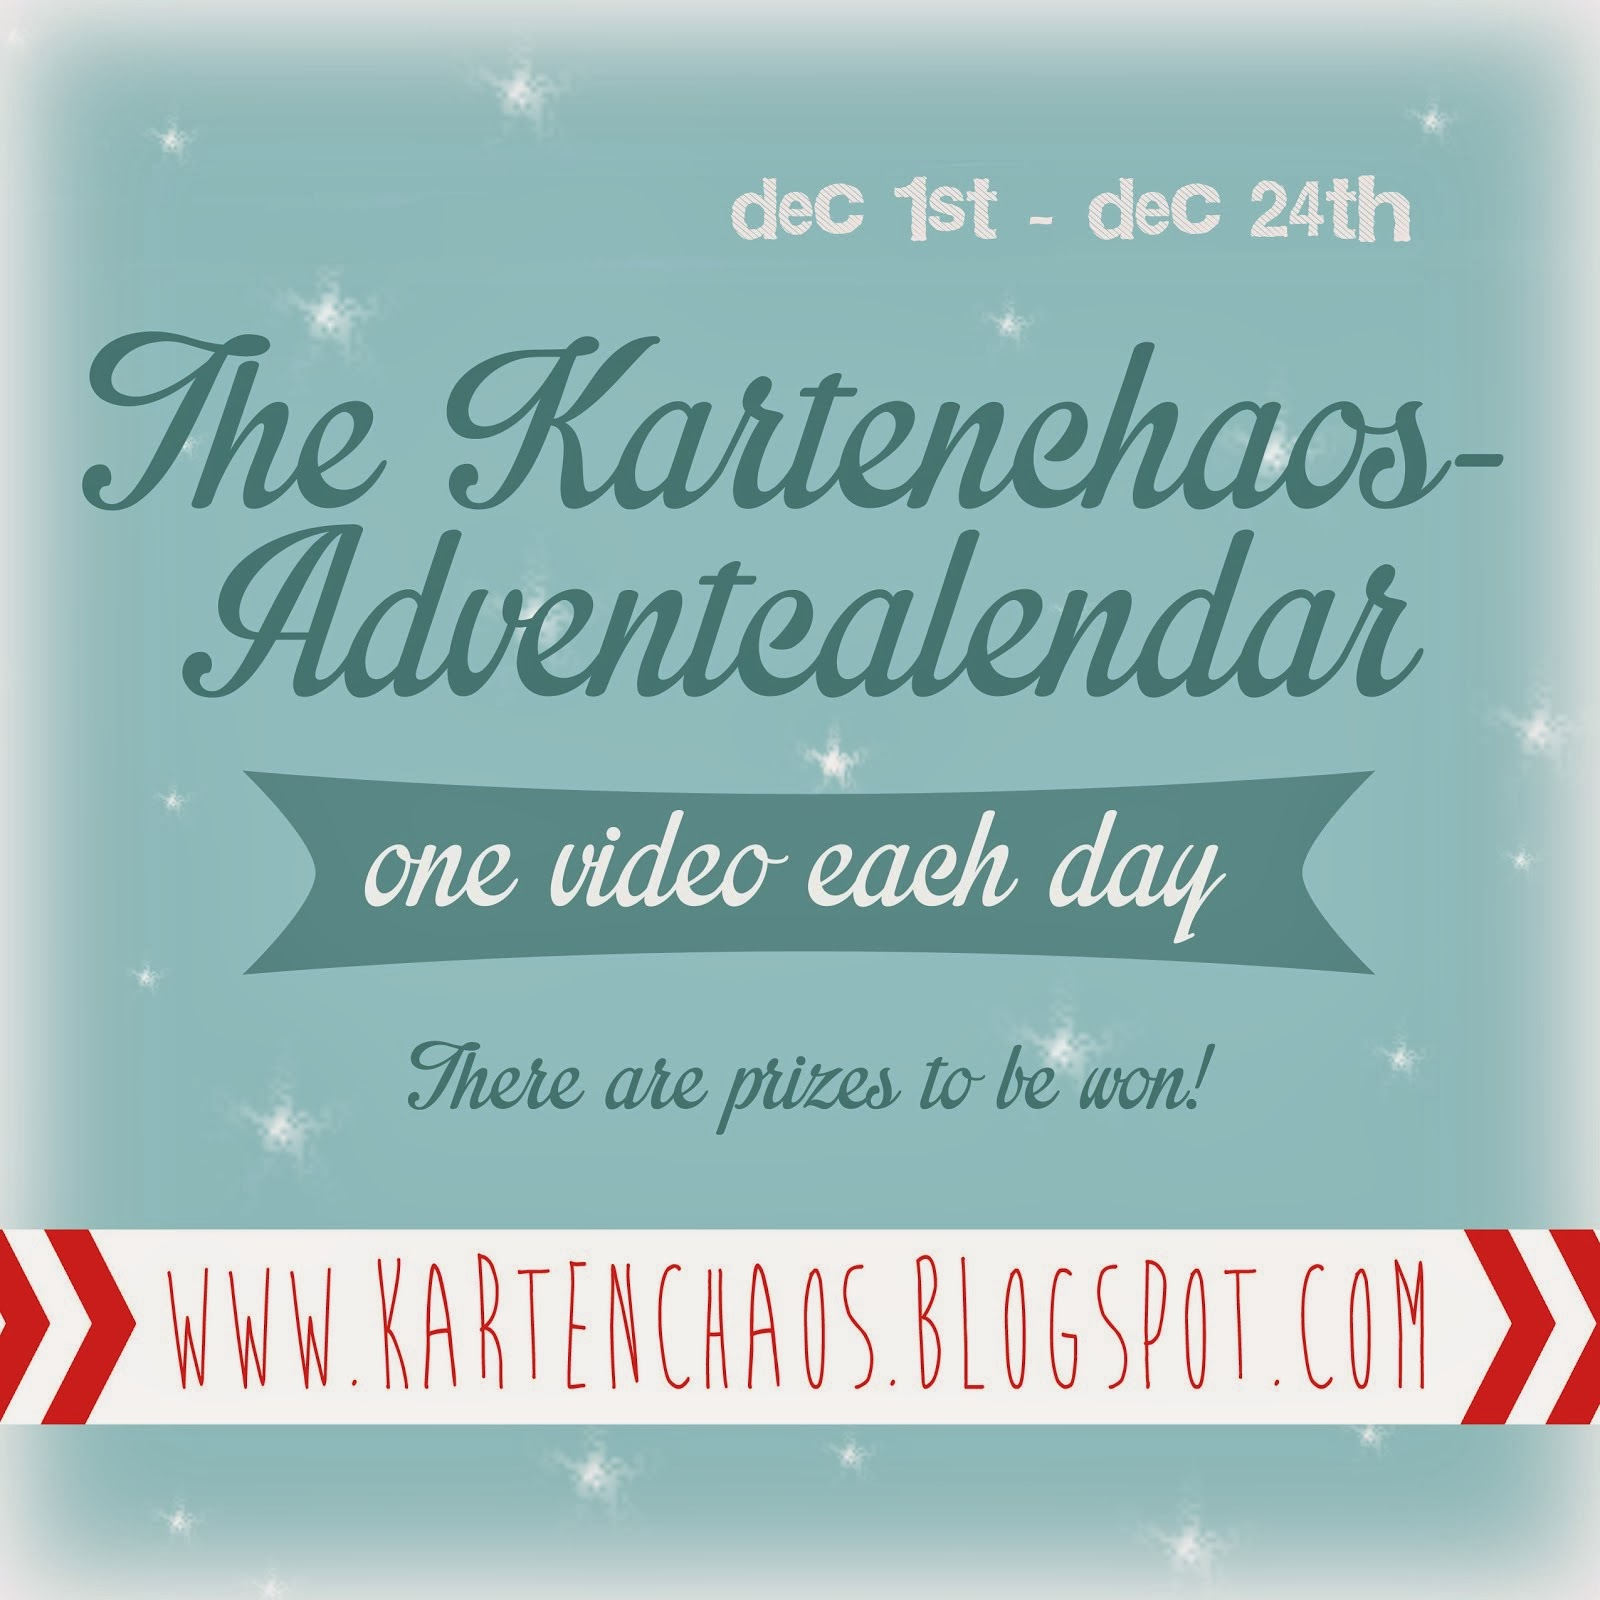 Info on the KC Adventcalendar